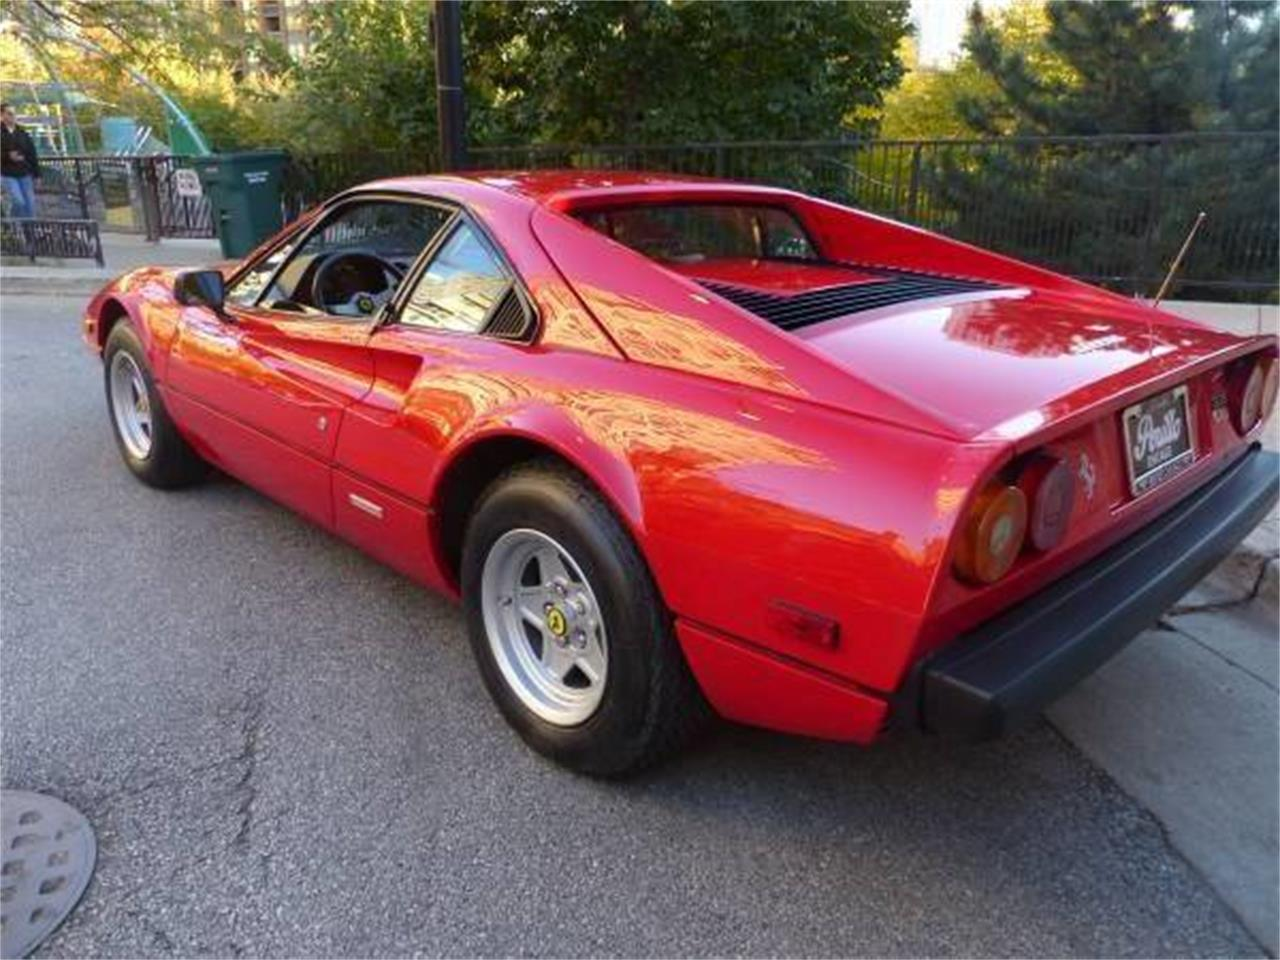 Large Picture of '79 Ferrari 308 located in Long Island New York - $97,000.00 - Q51V